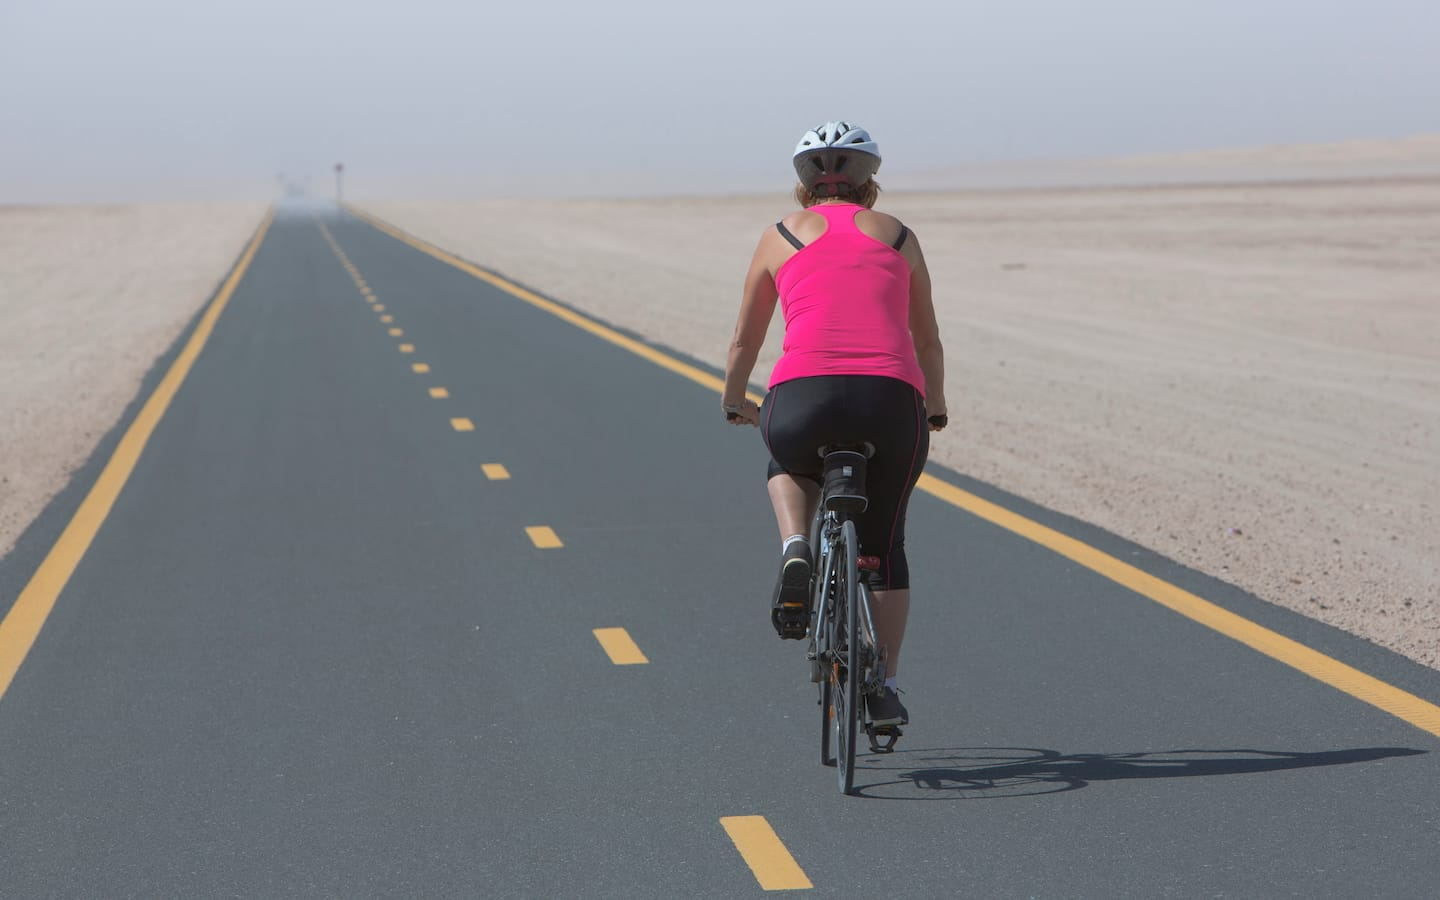 Cycling at Al Wathba Track is one of the fun things to do in Abu Dhabi at night.